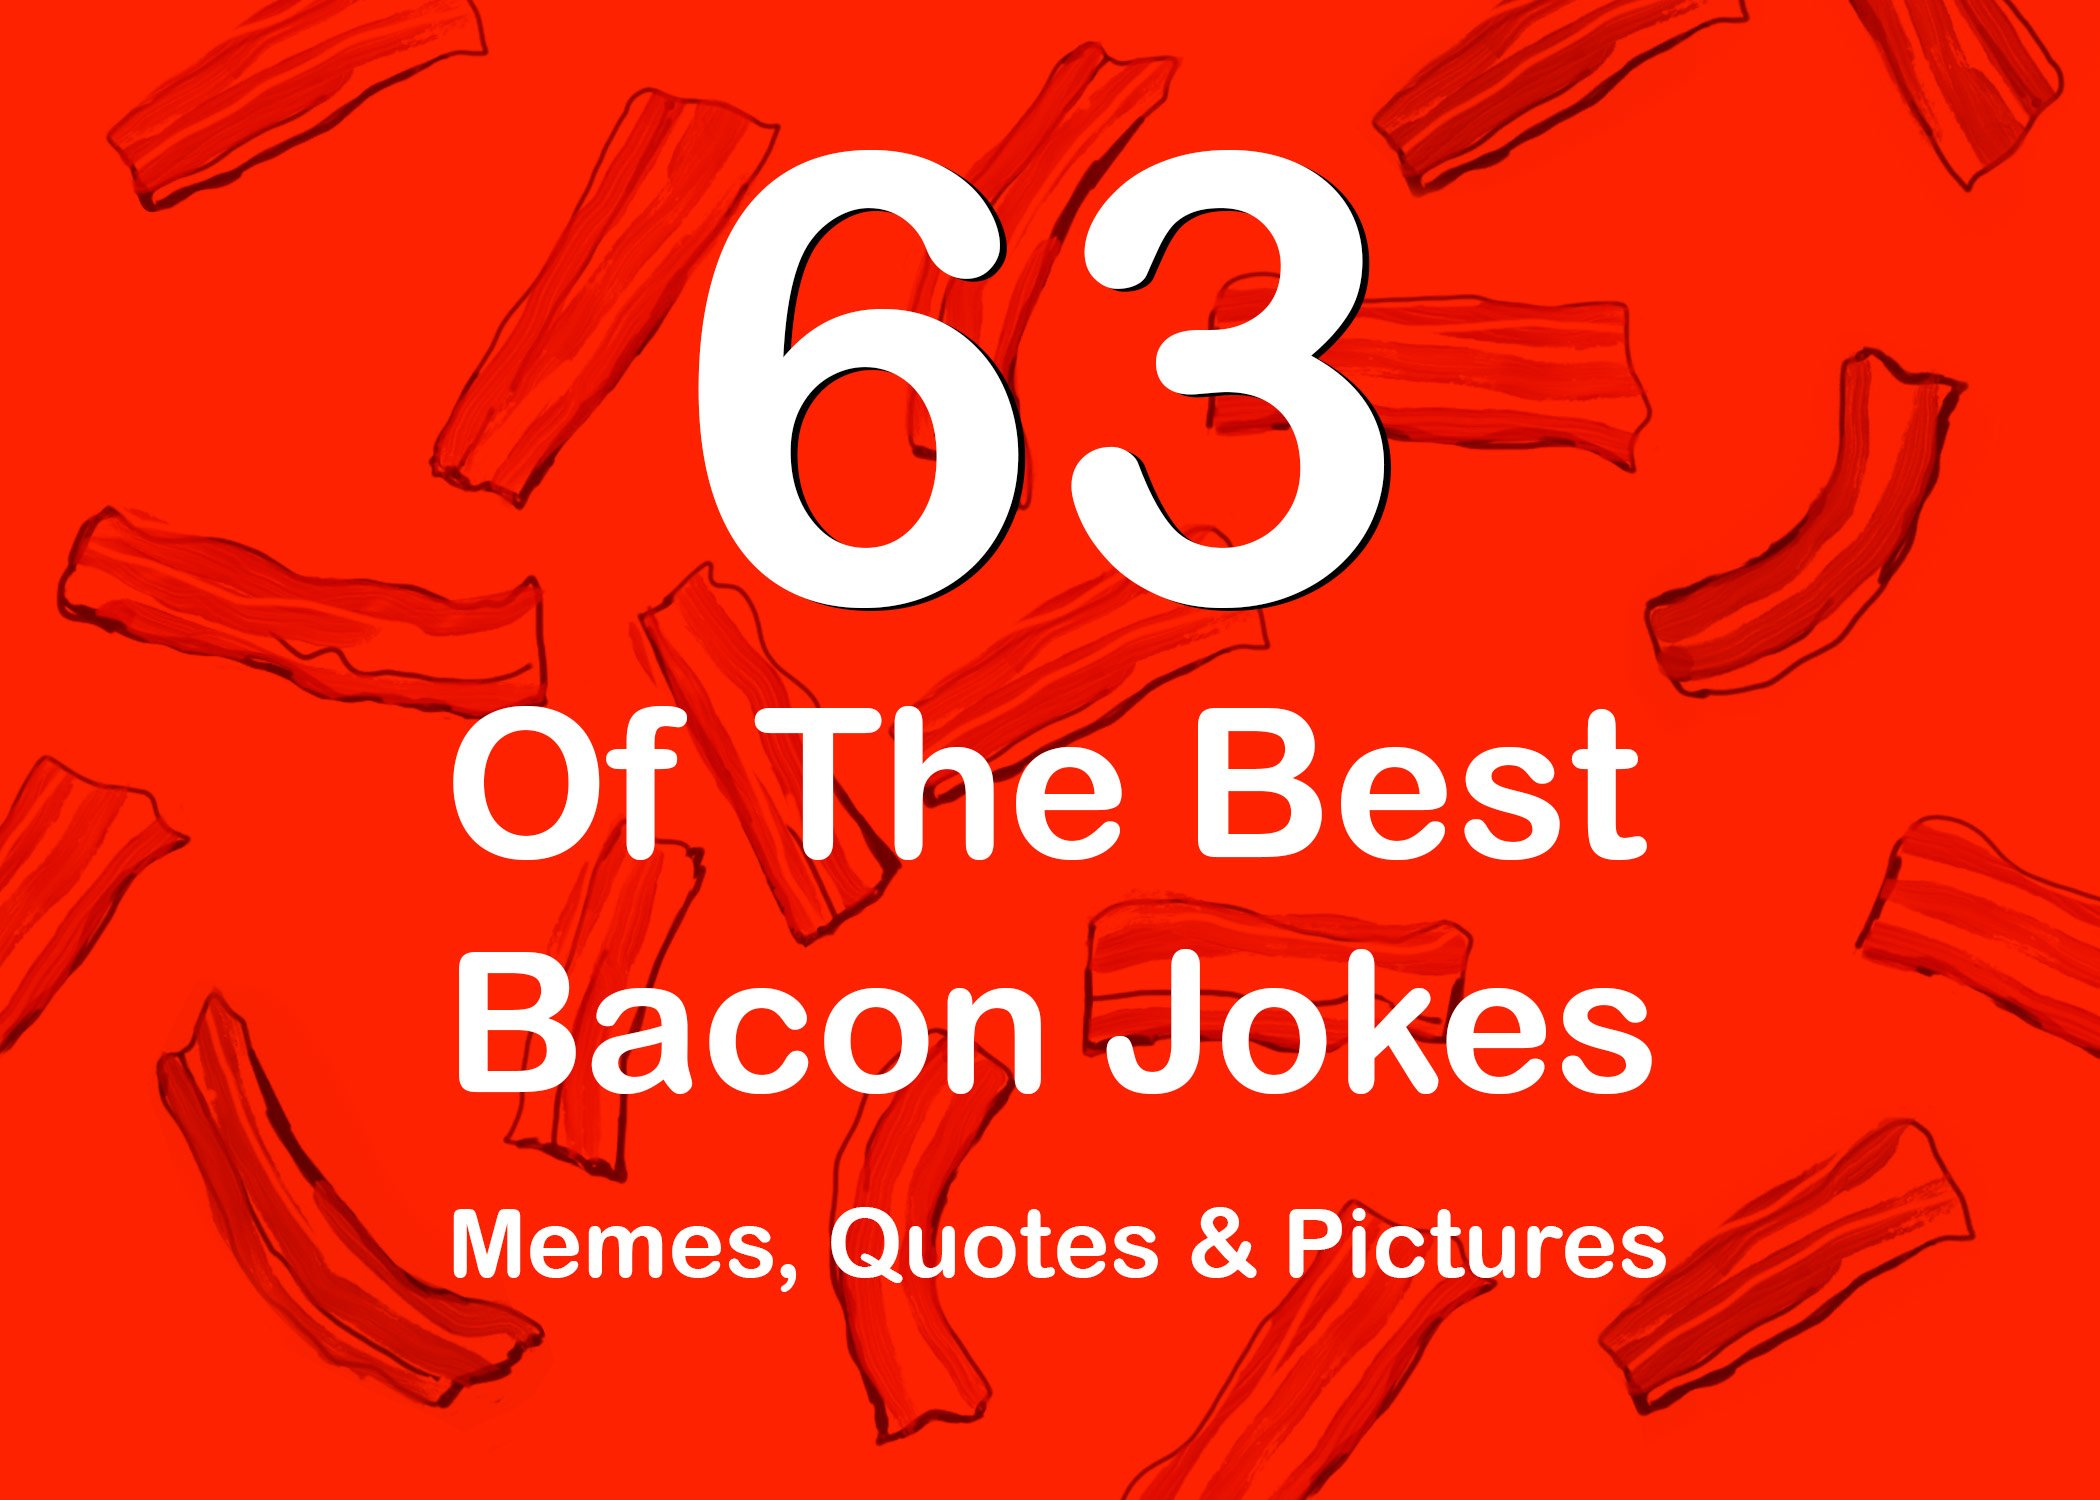 63 Funny Bacon Jokes